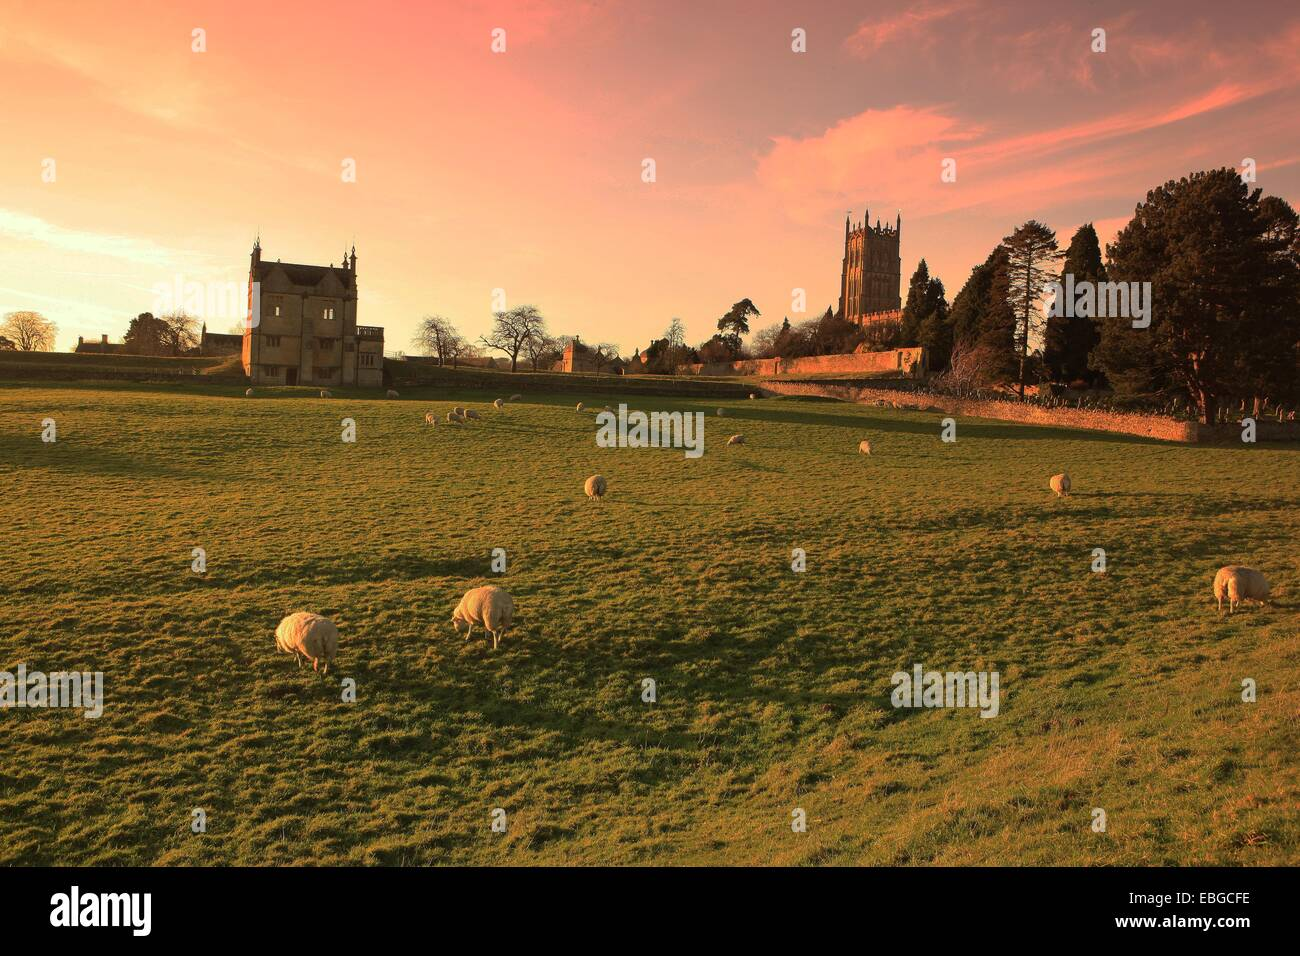 Sheep grazing below the Wool Church and the remains of the Old Manor House at Chipping Campden in the Cotswolds - Stock Image